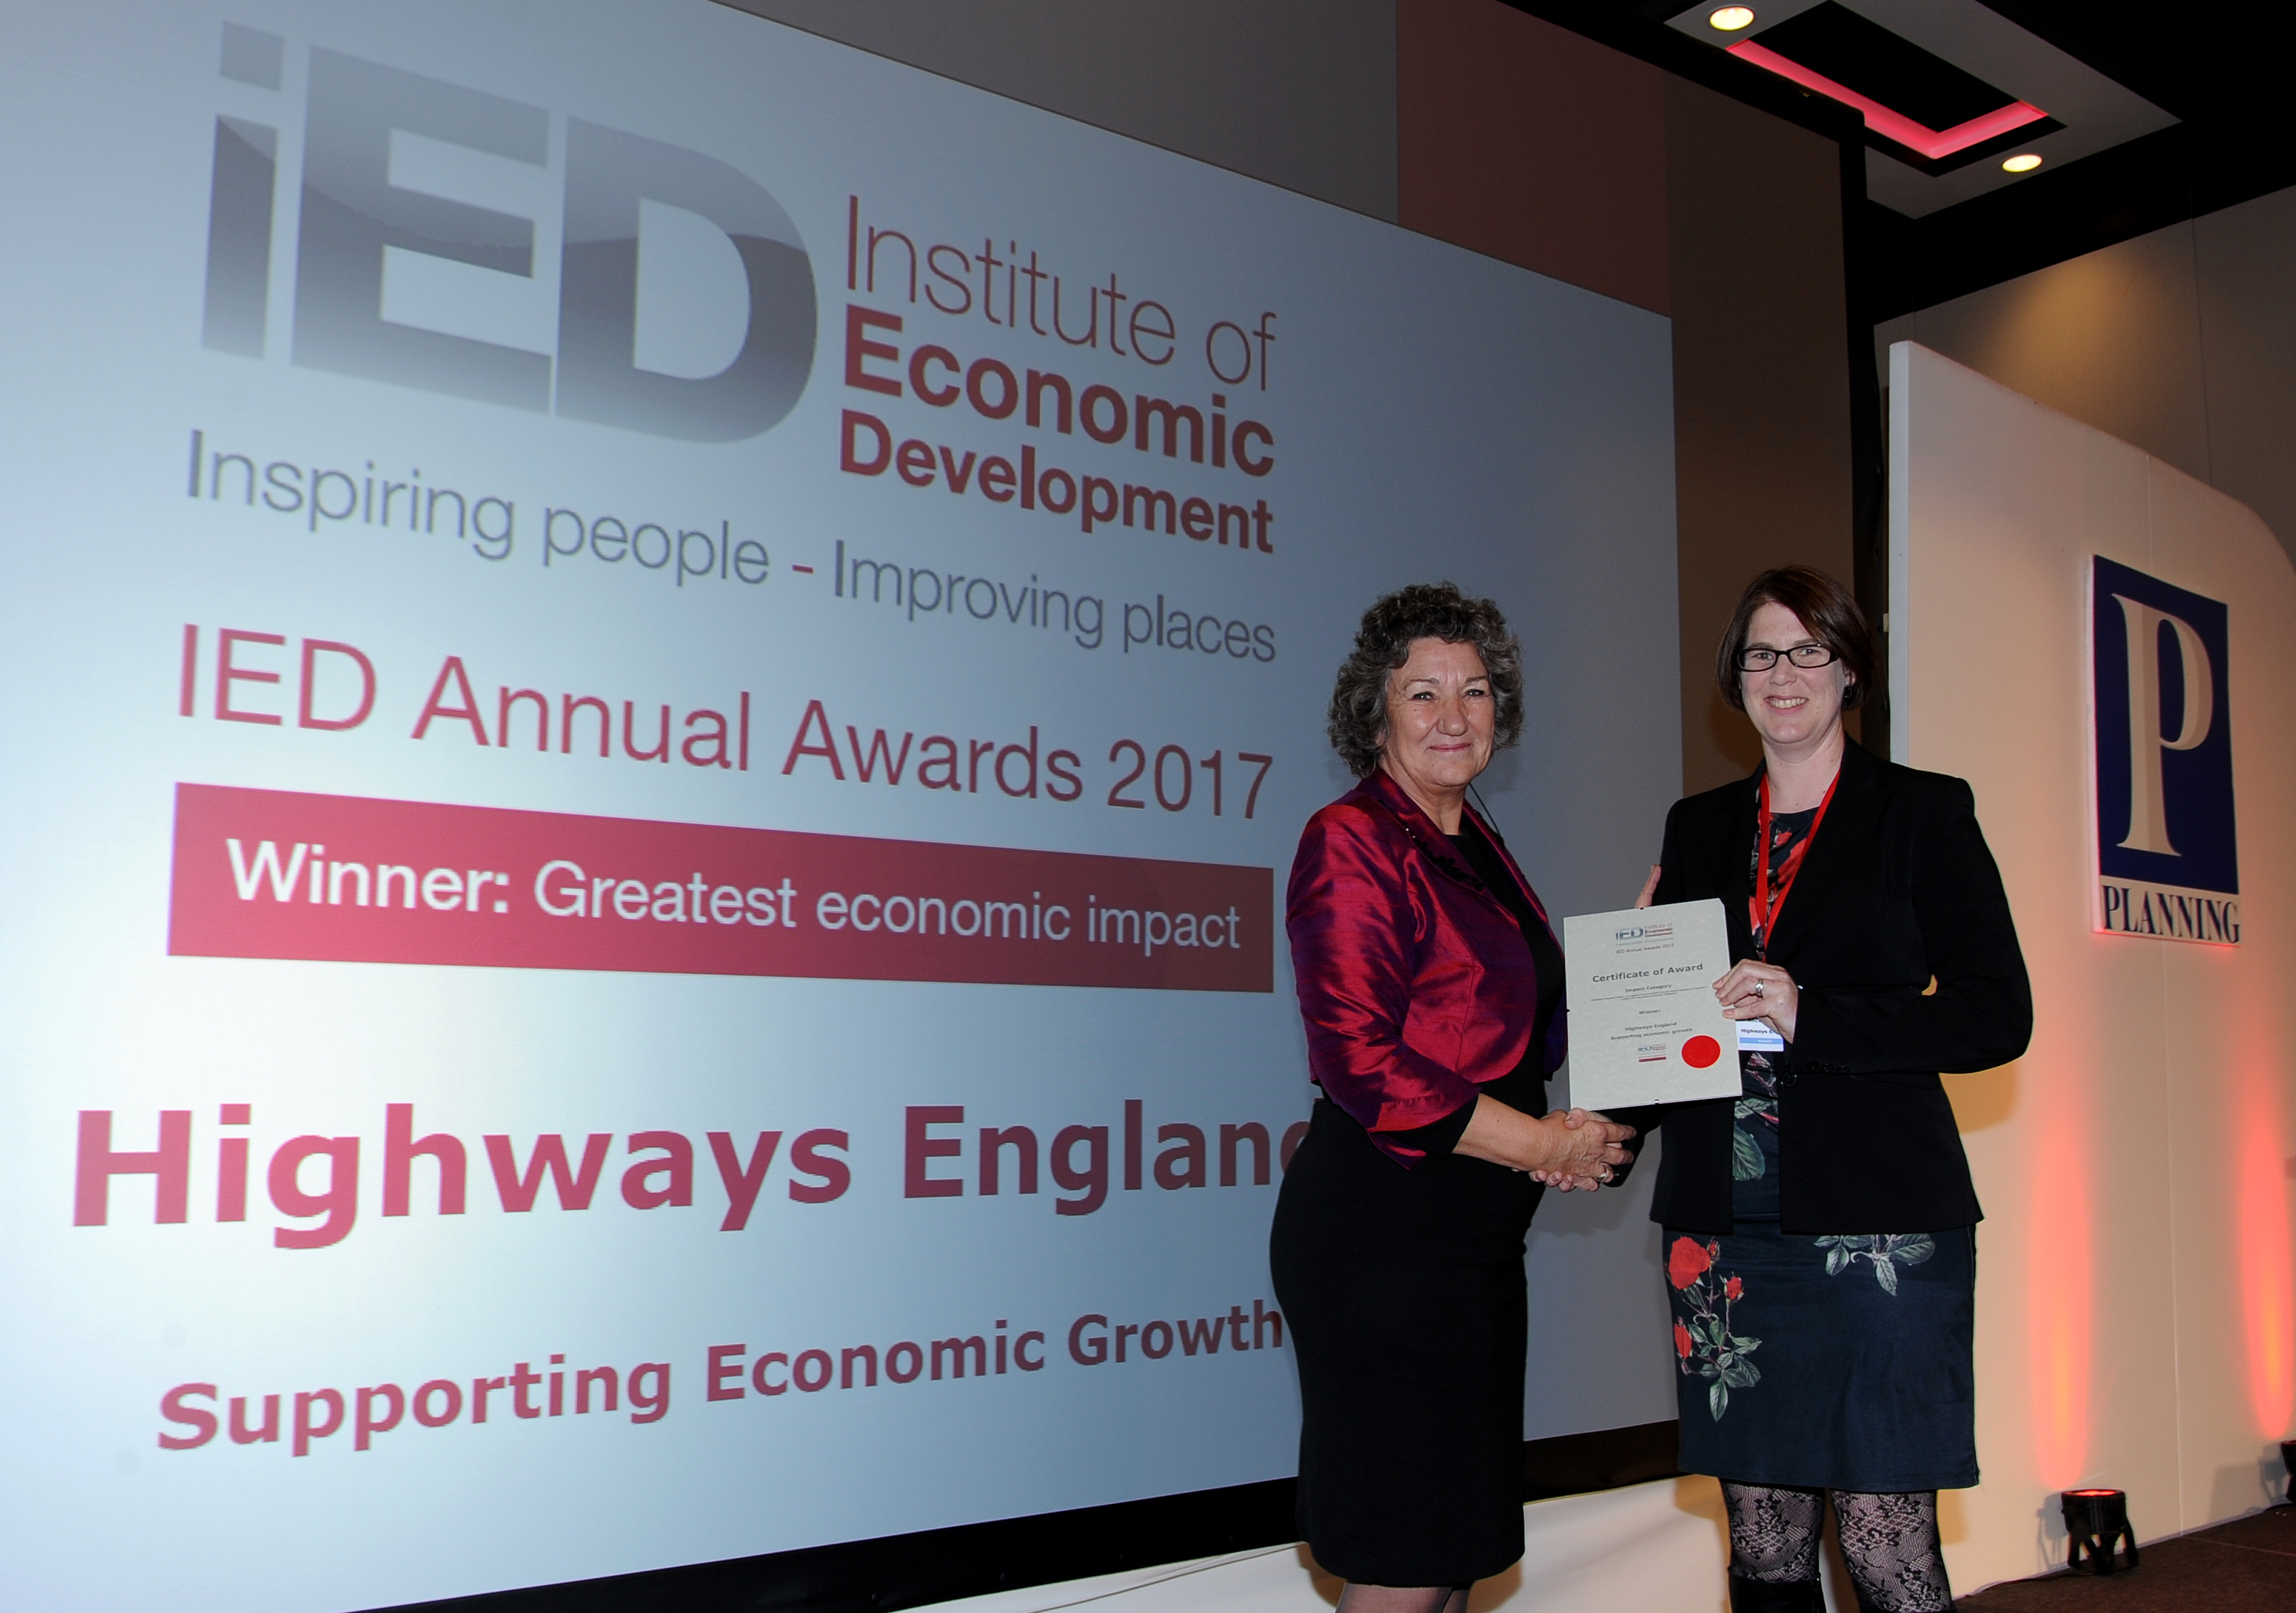 ied annual awards 2017 highways england wins greatest economic